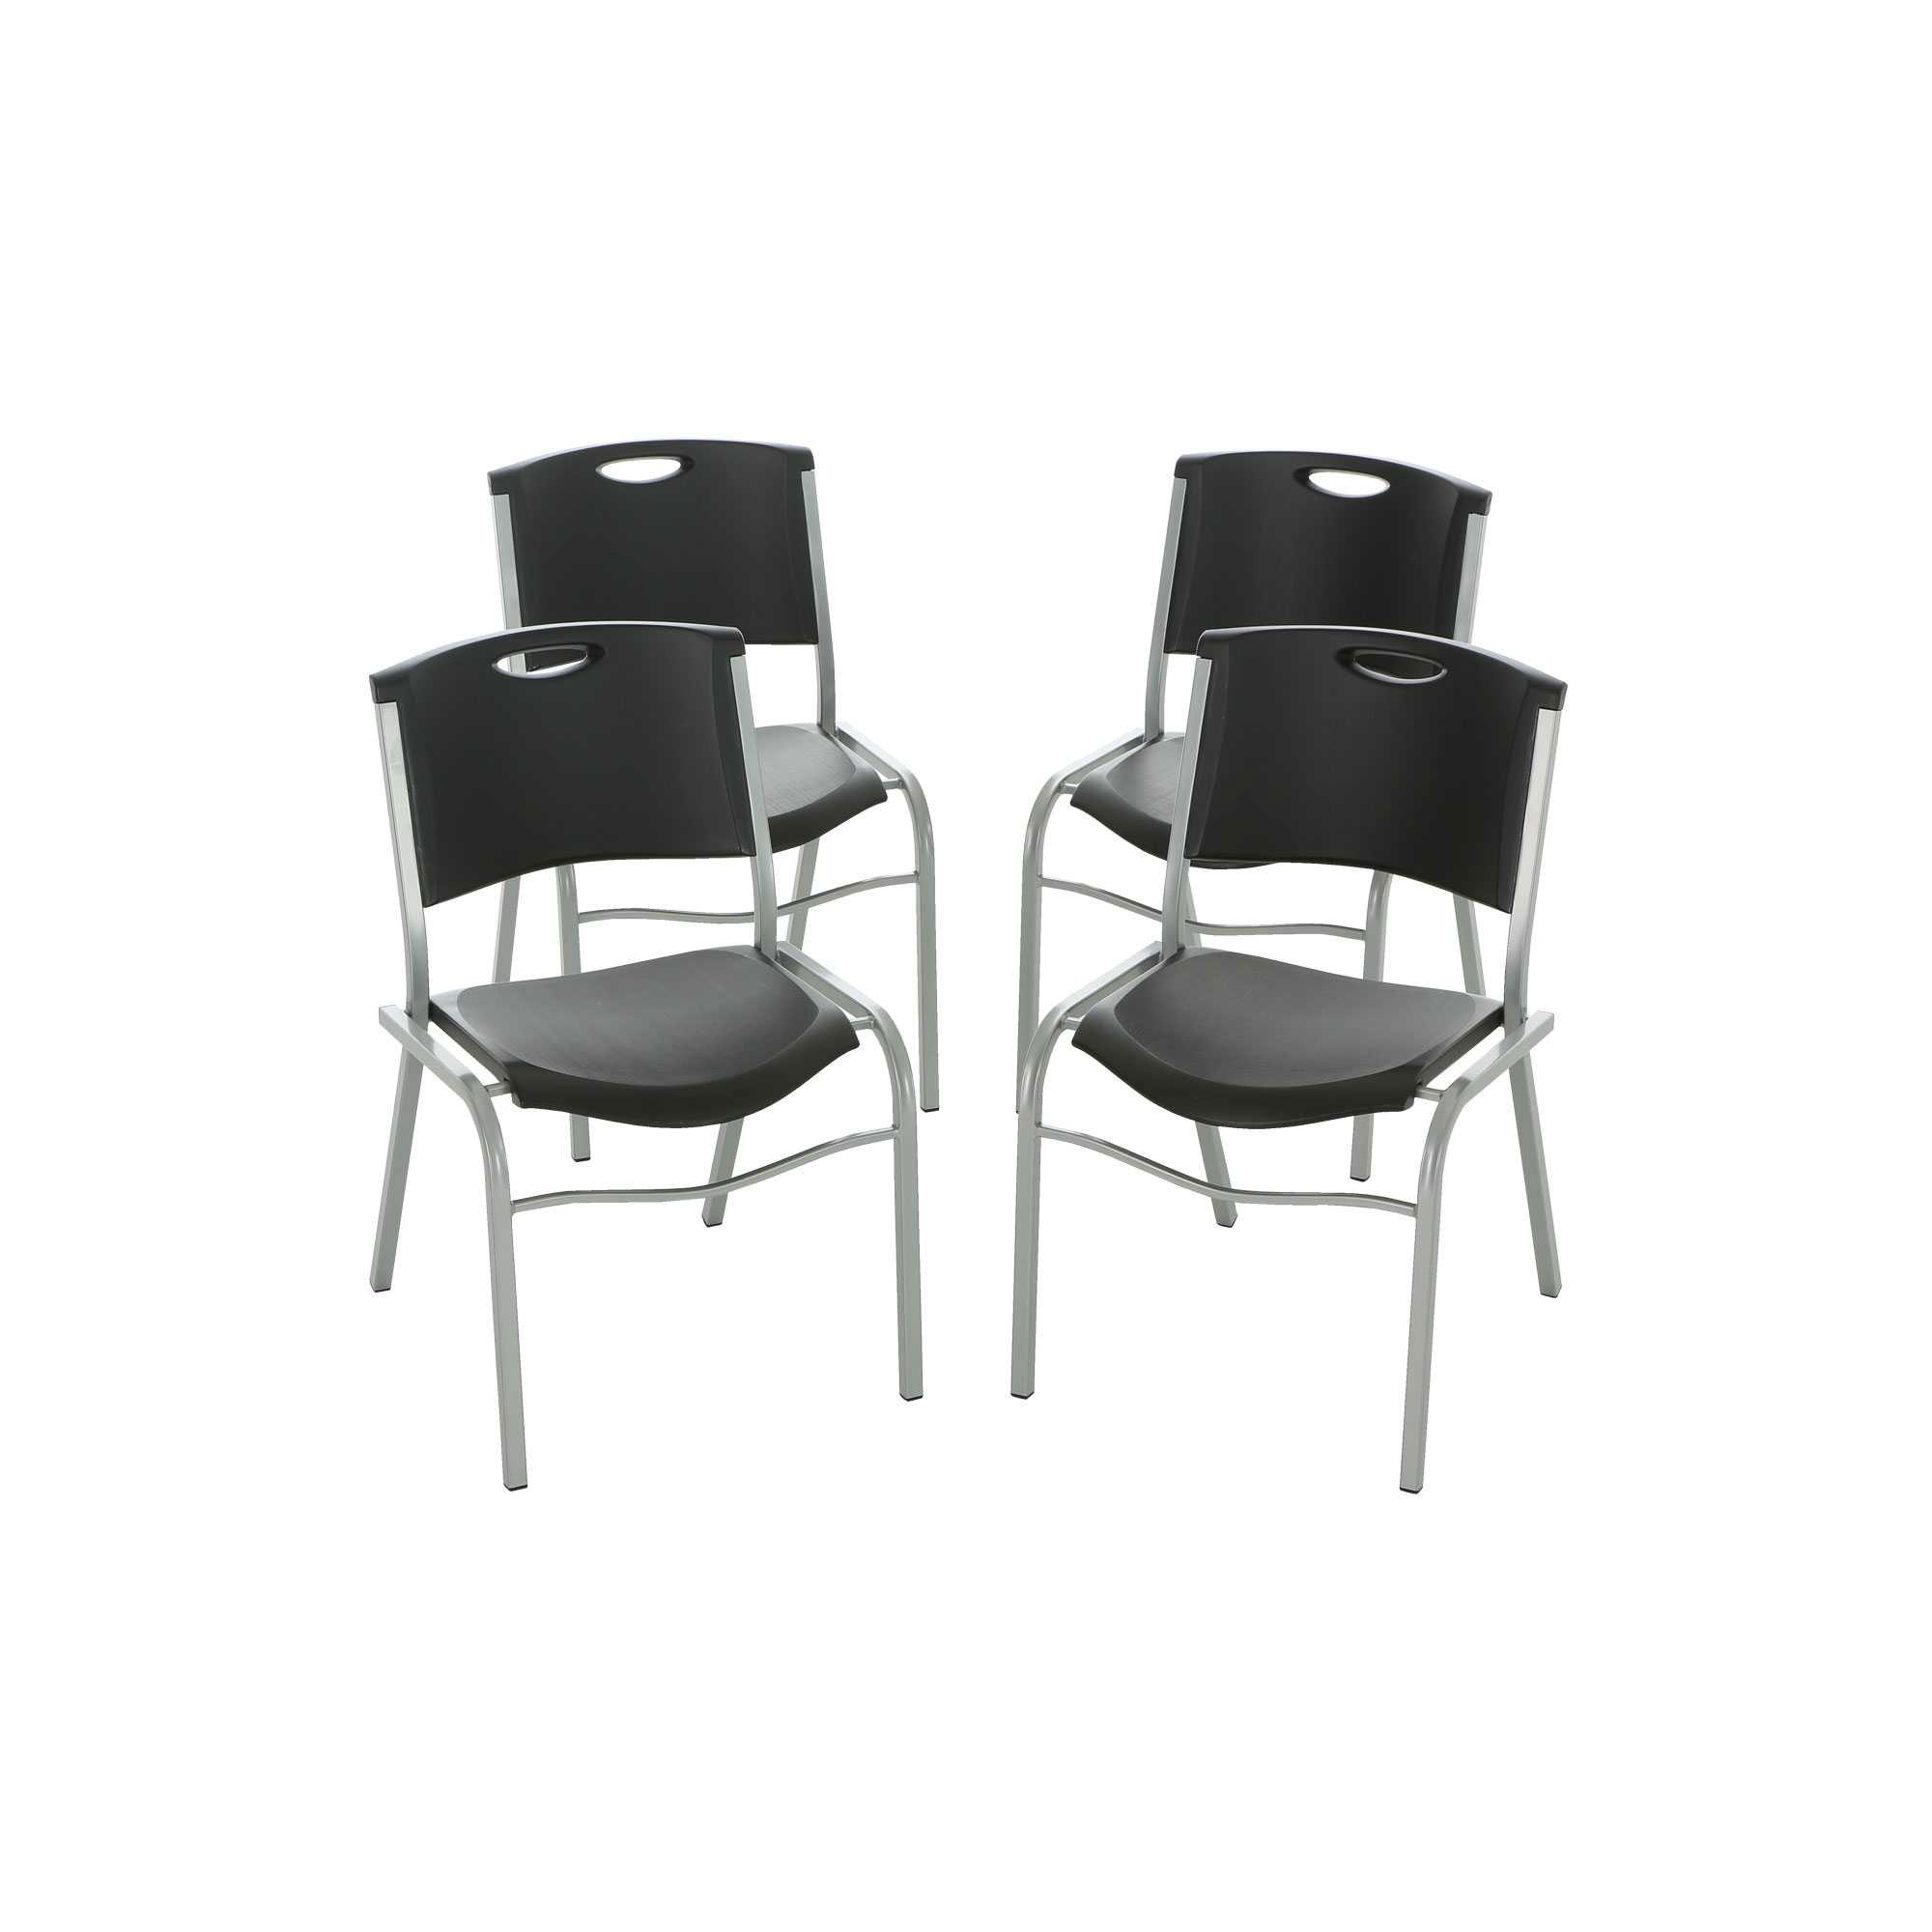 Lifetime Stacking Chairs 42830 Black Stackable Chairs 4 Pack